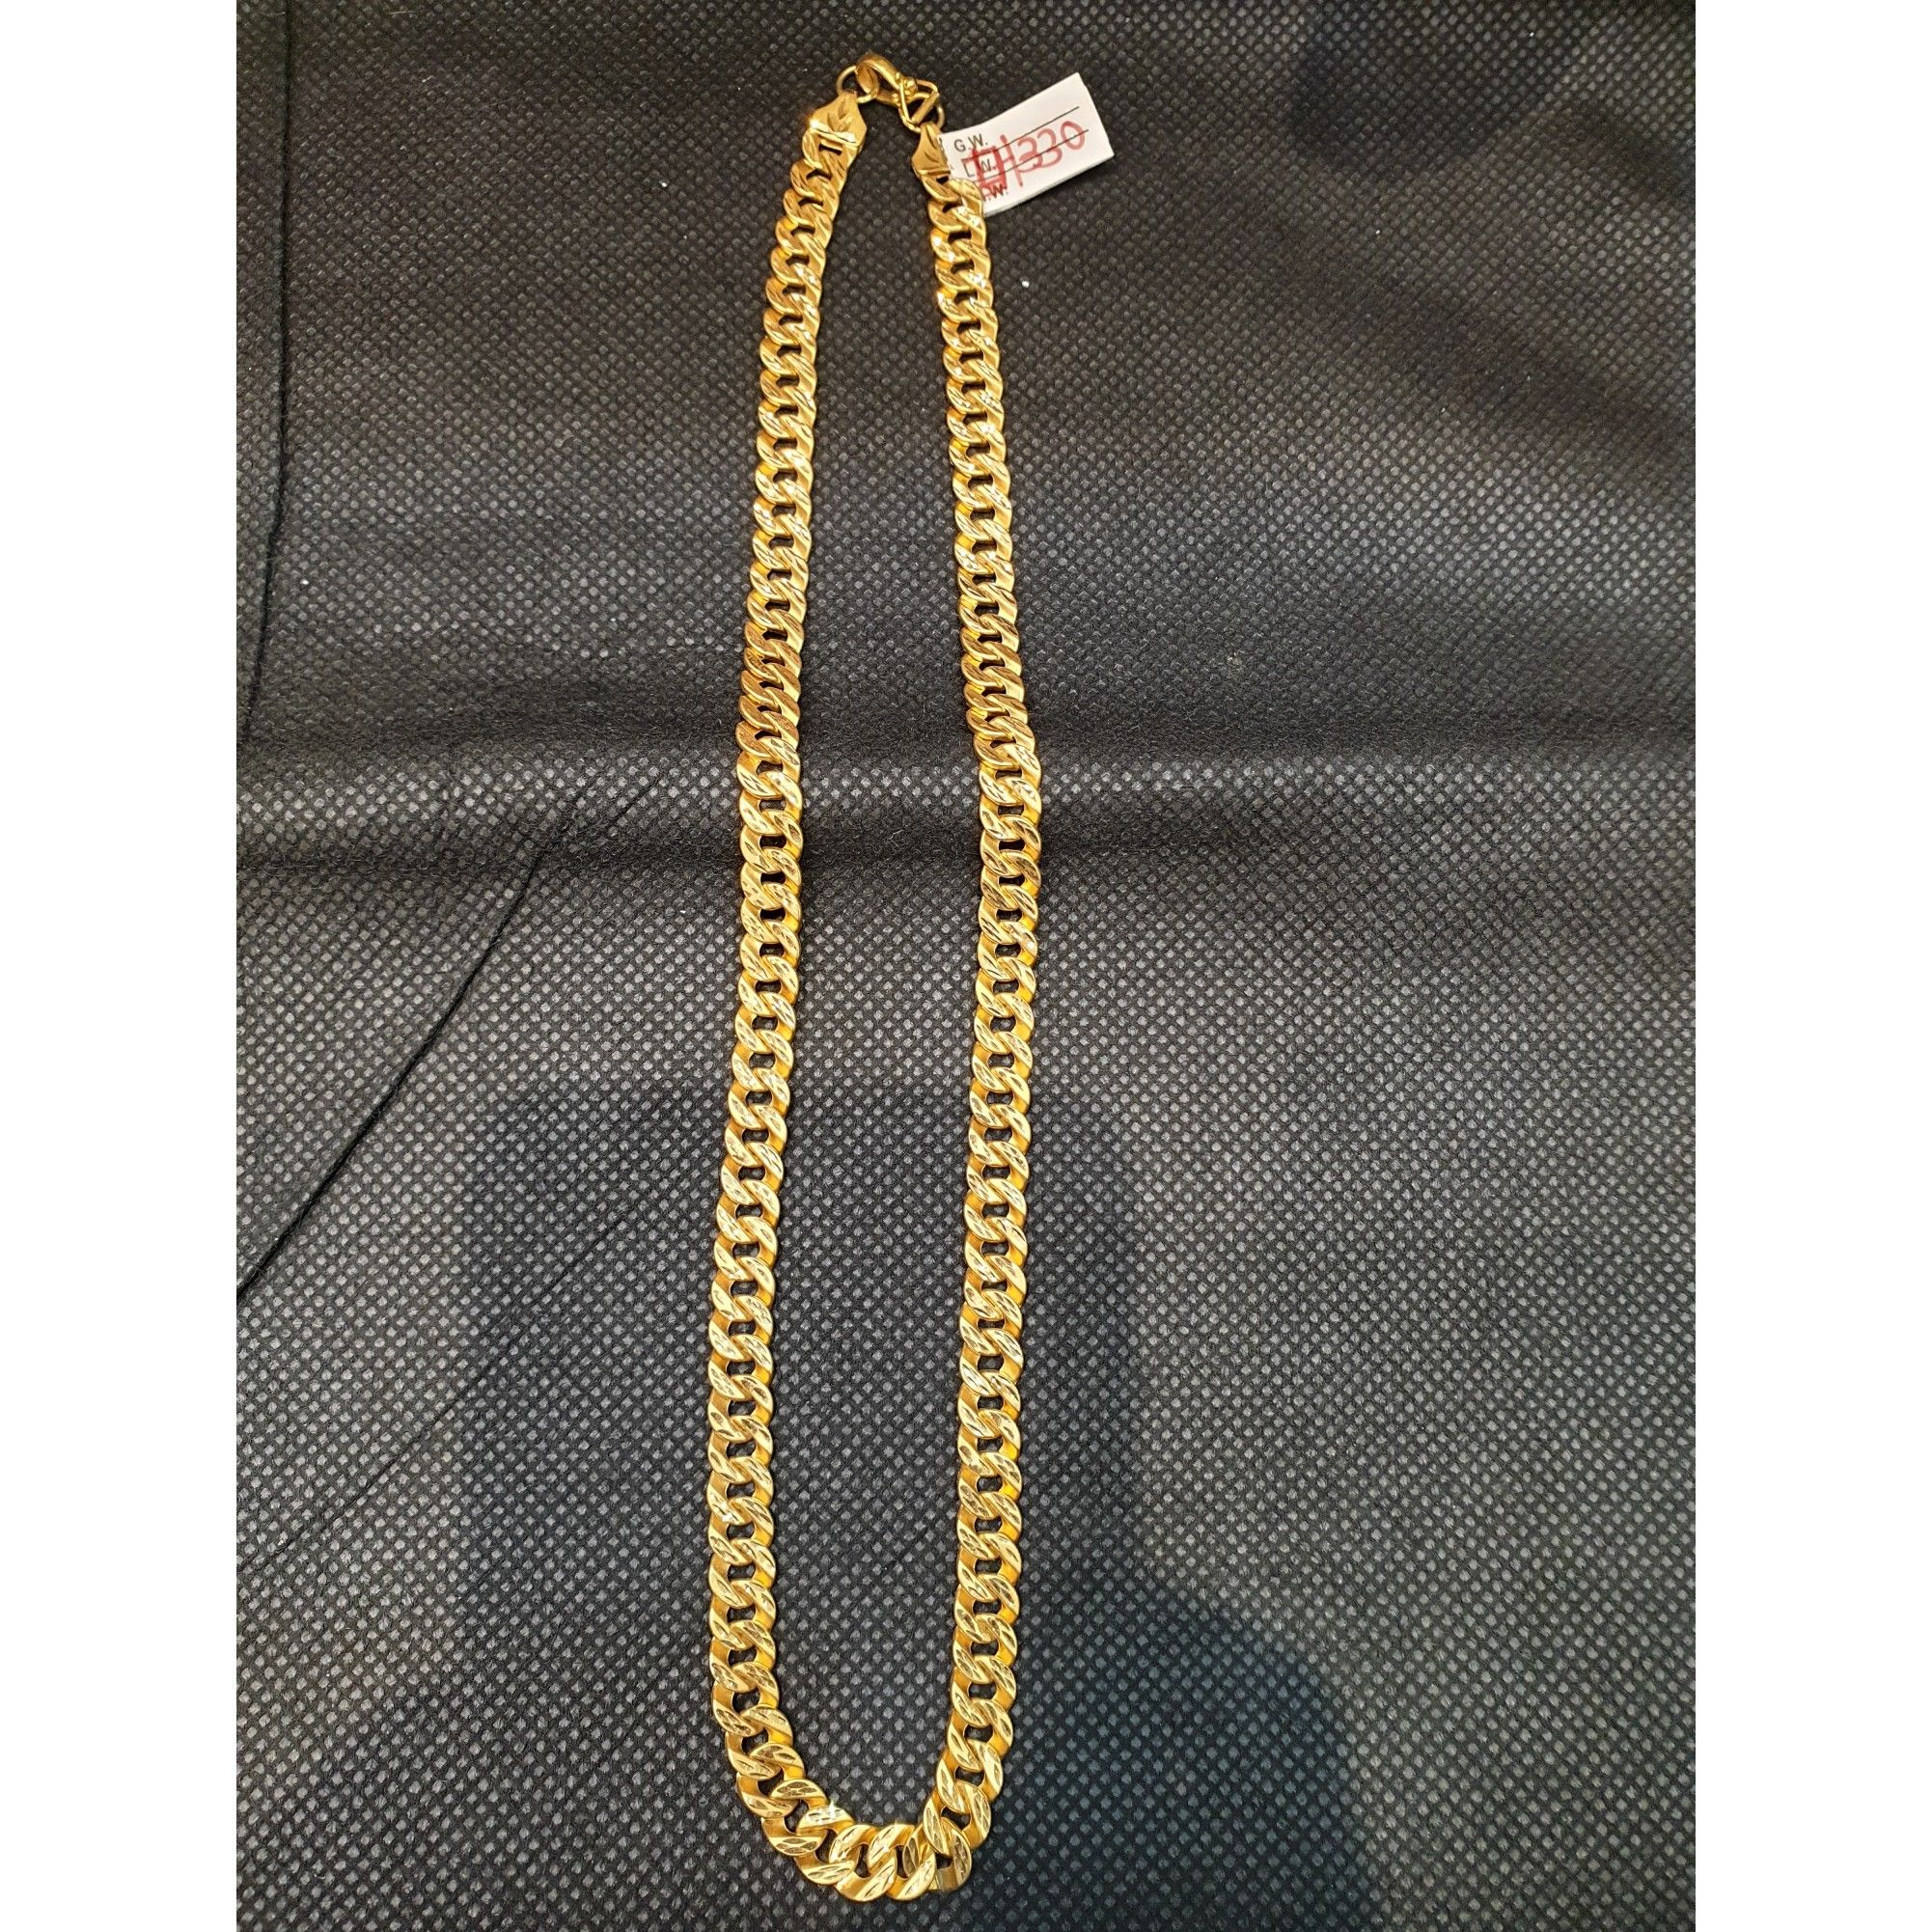 Totally fancy chain